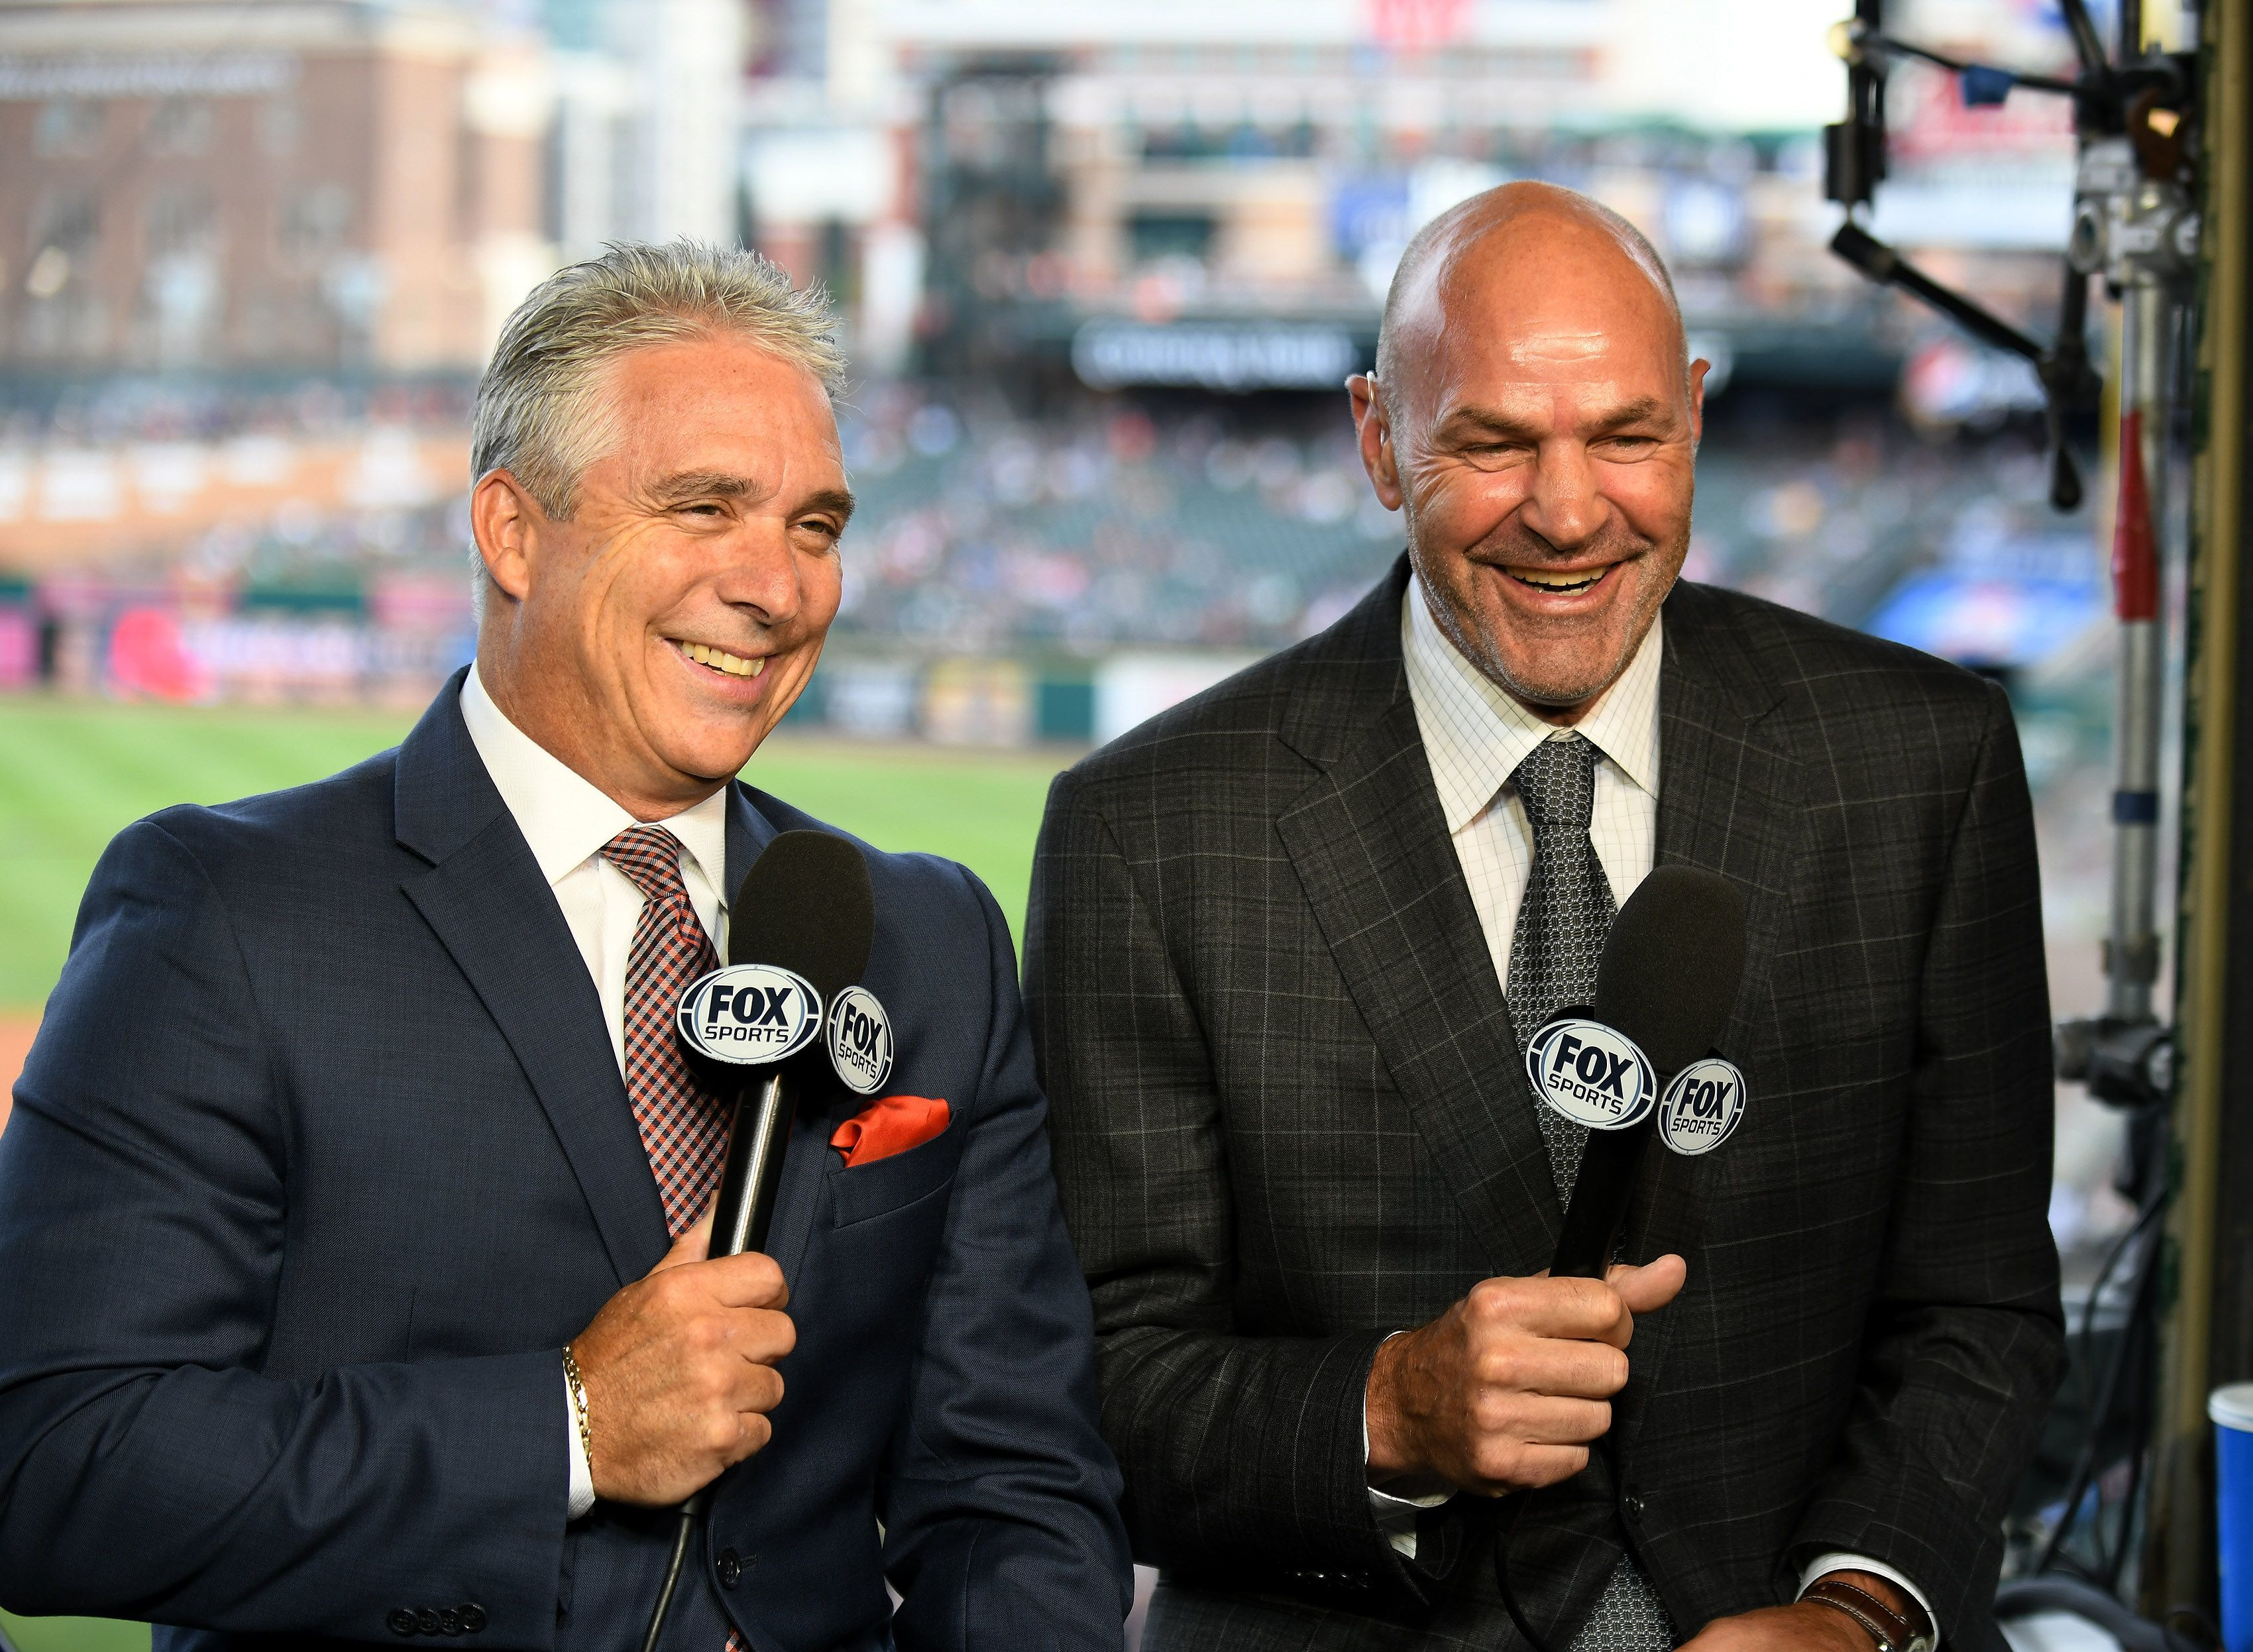 Matt Shepard, left, with Tigers legend Kirk Gibson, said working Tigers broadcasts will bring him back to fond moments of his childhood.